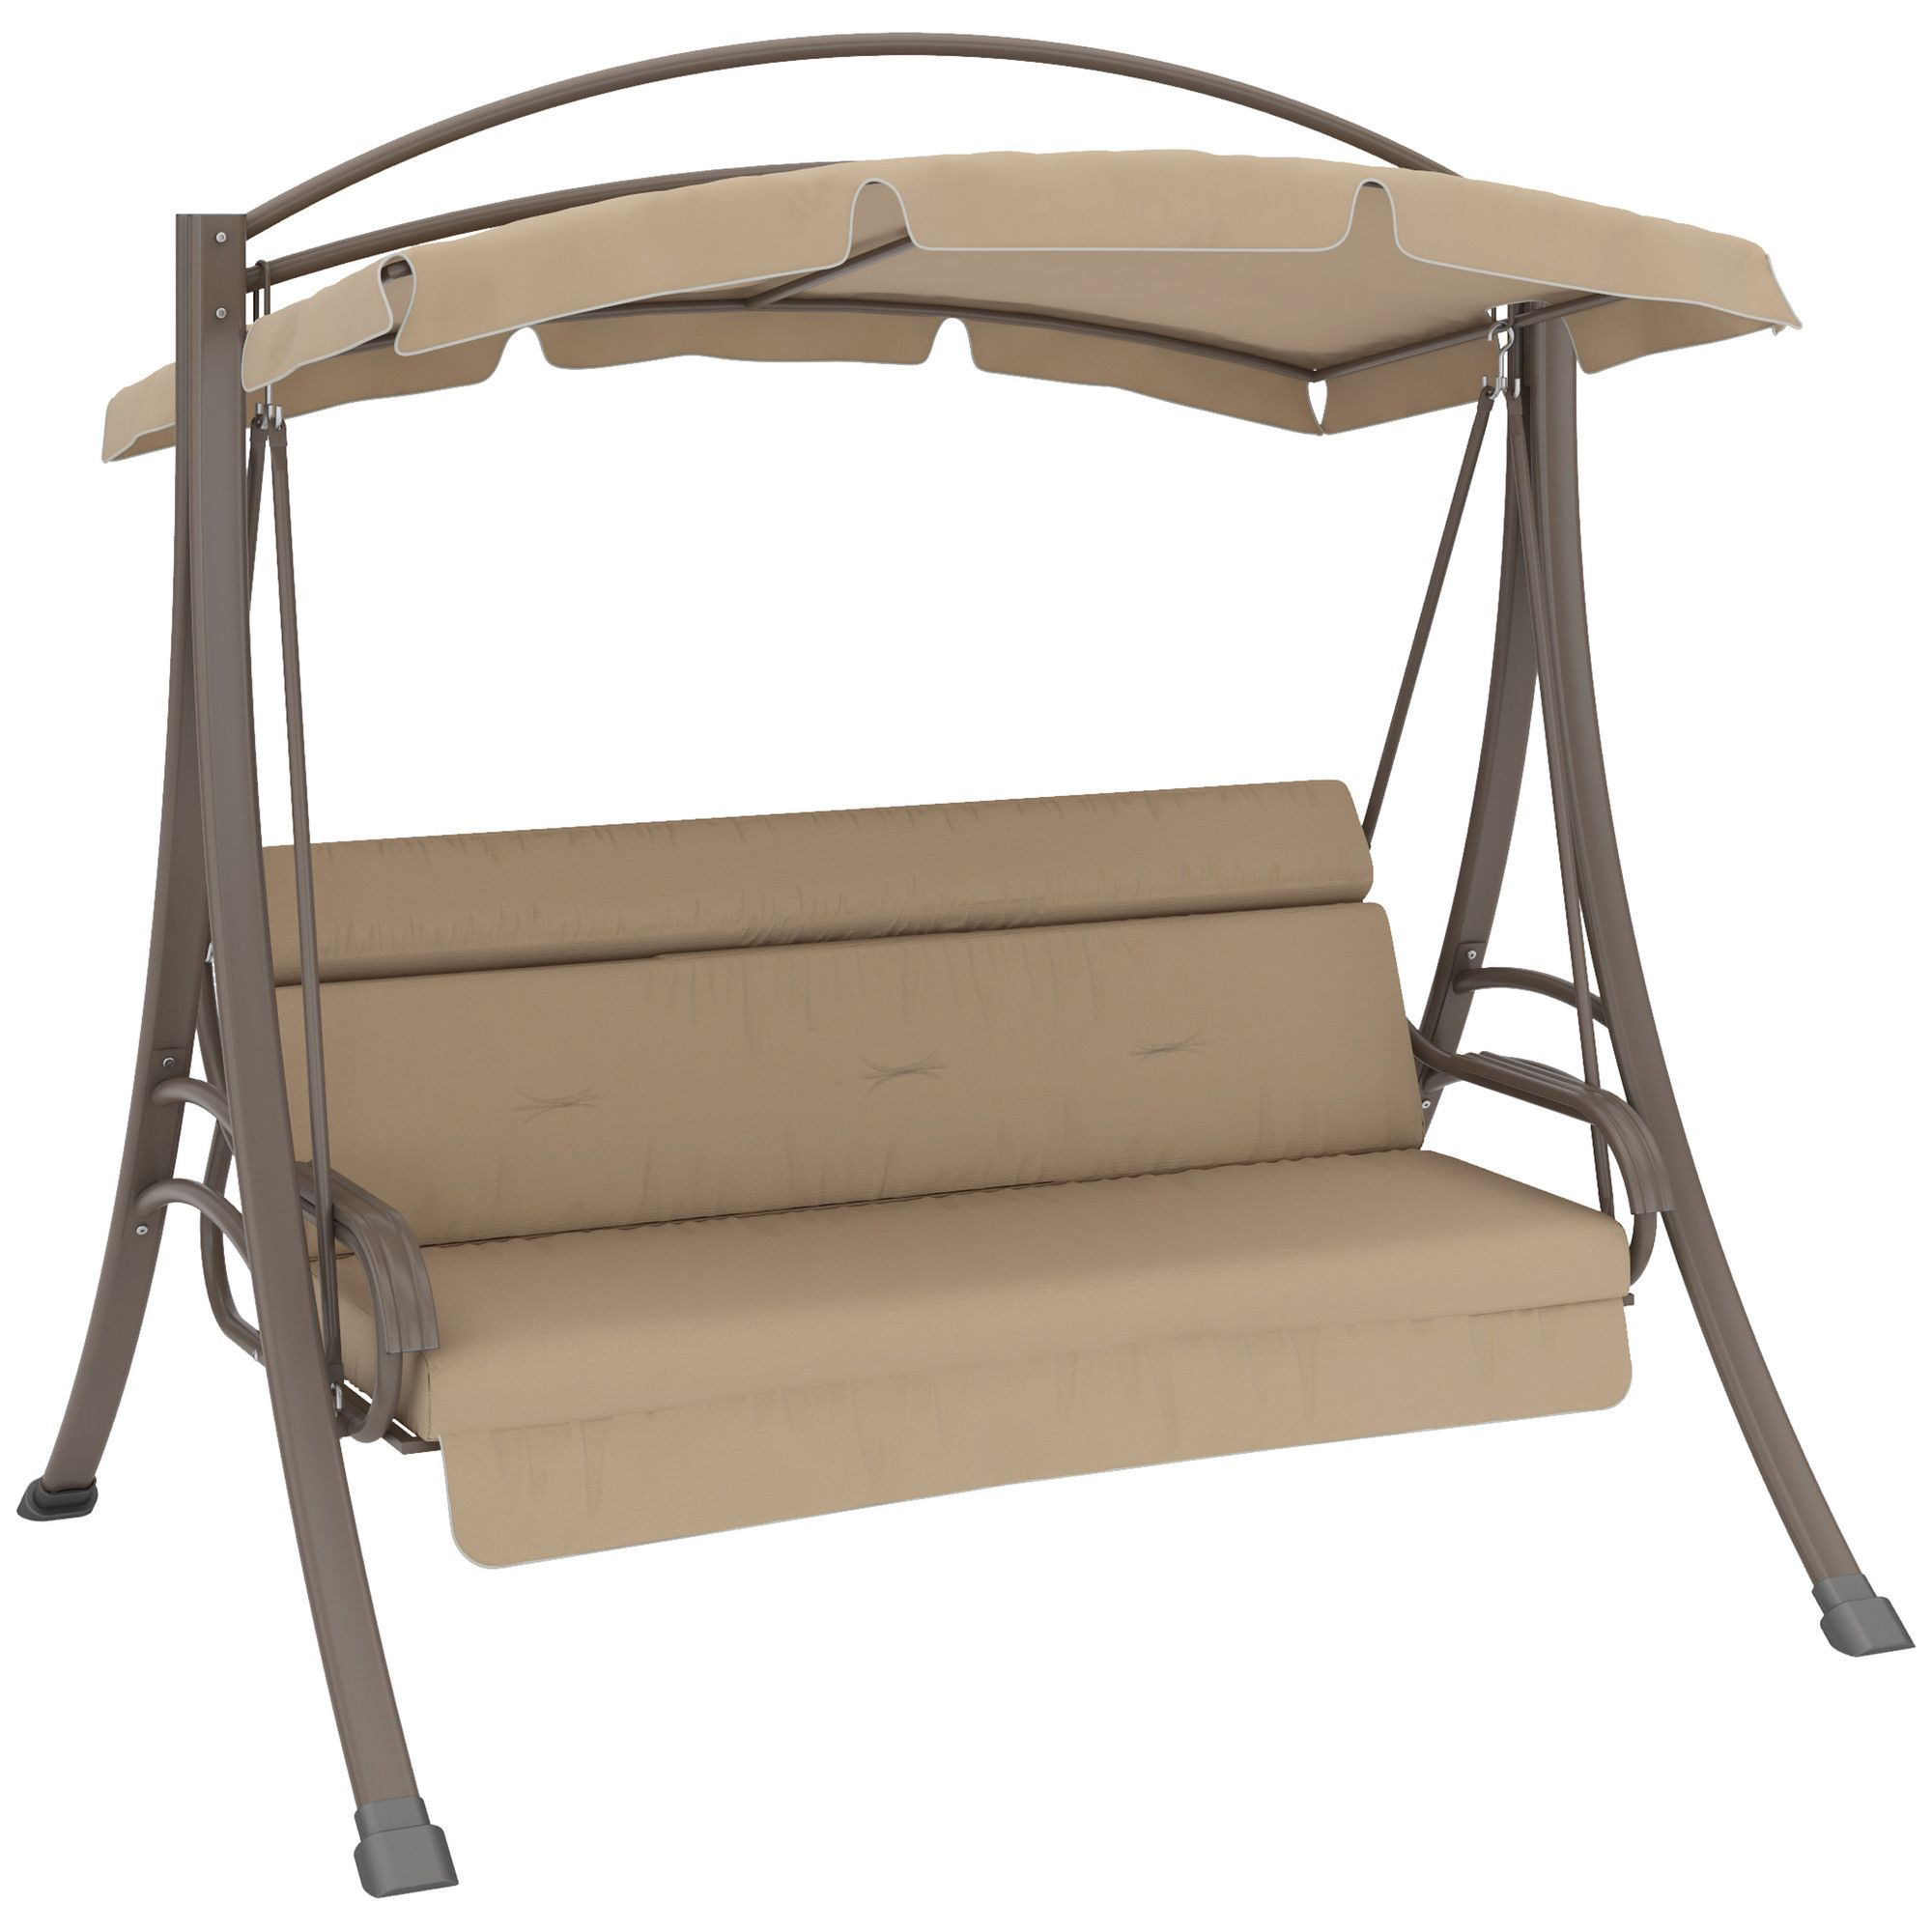 Bainville Porch Swing With Arched Canopy Porch Swing With Canopy